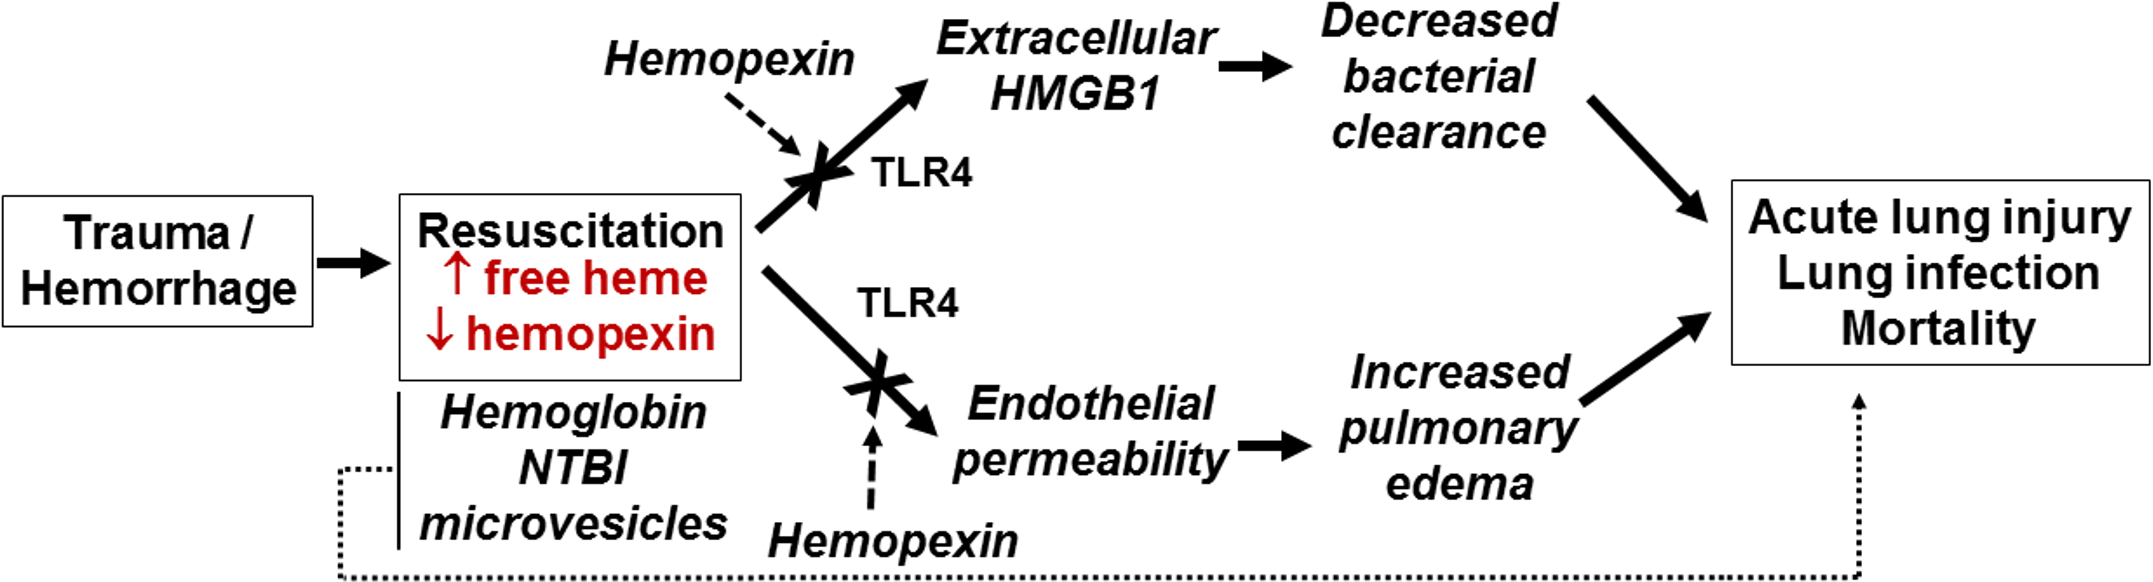 Proposed mechanisms for free-heme-dependent potentiation of lung infection after trauma hemorrhage.